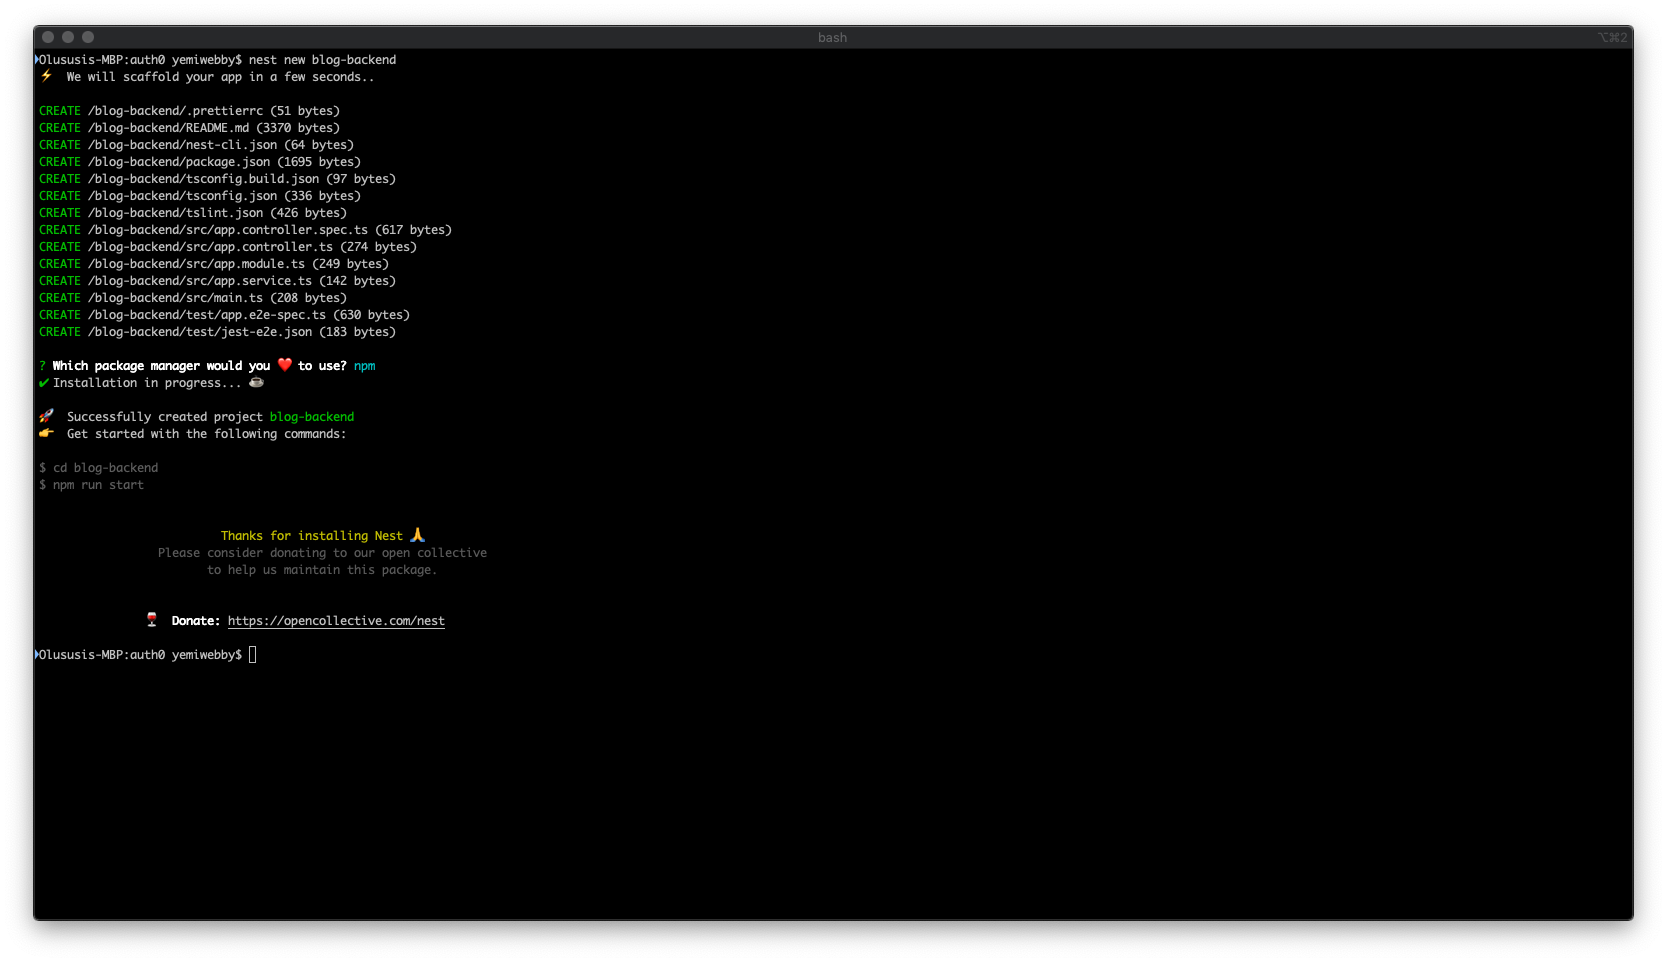 Terminal view of installing Nest.js